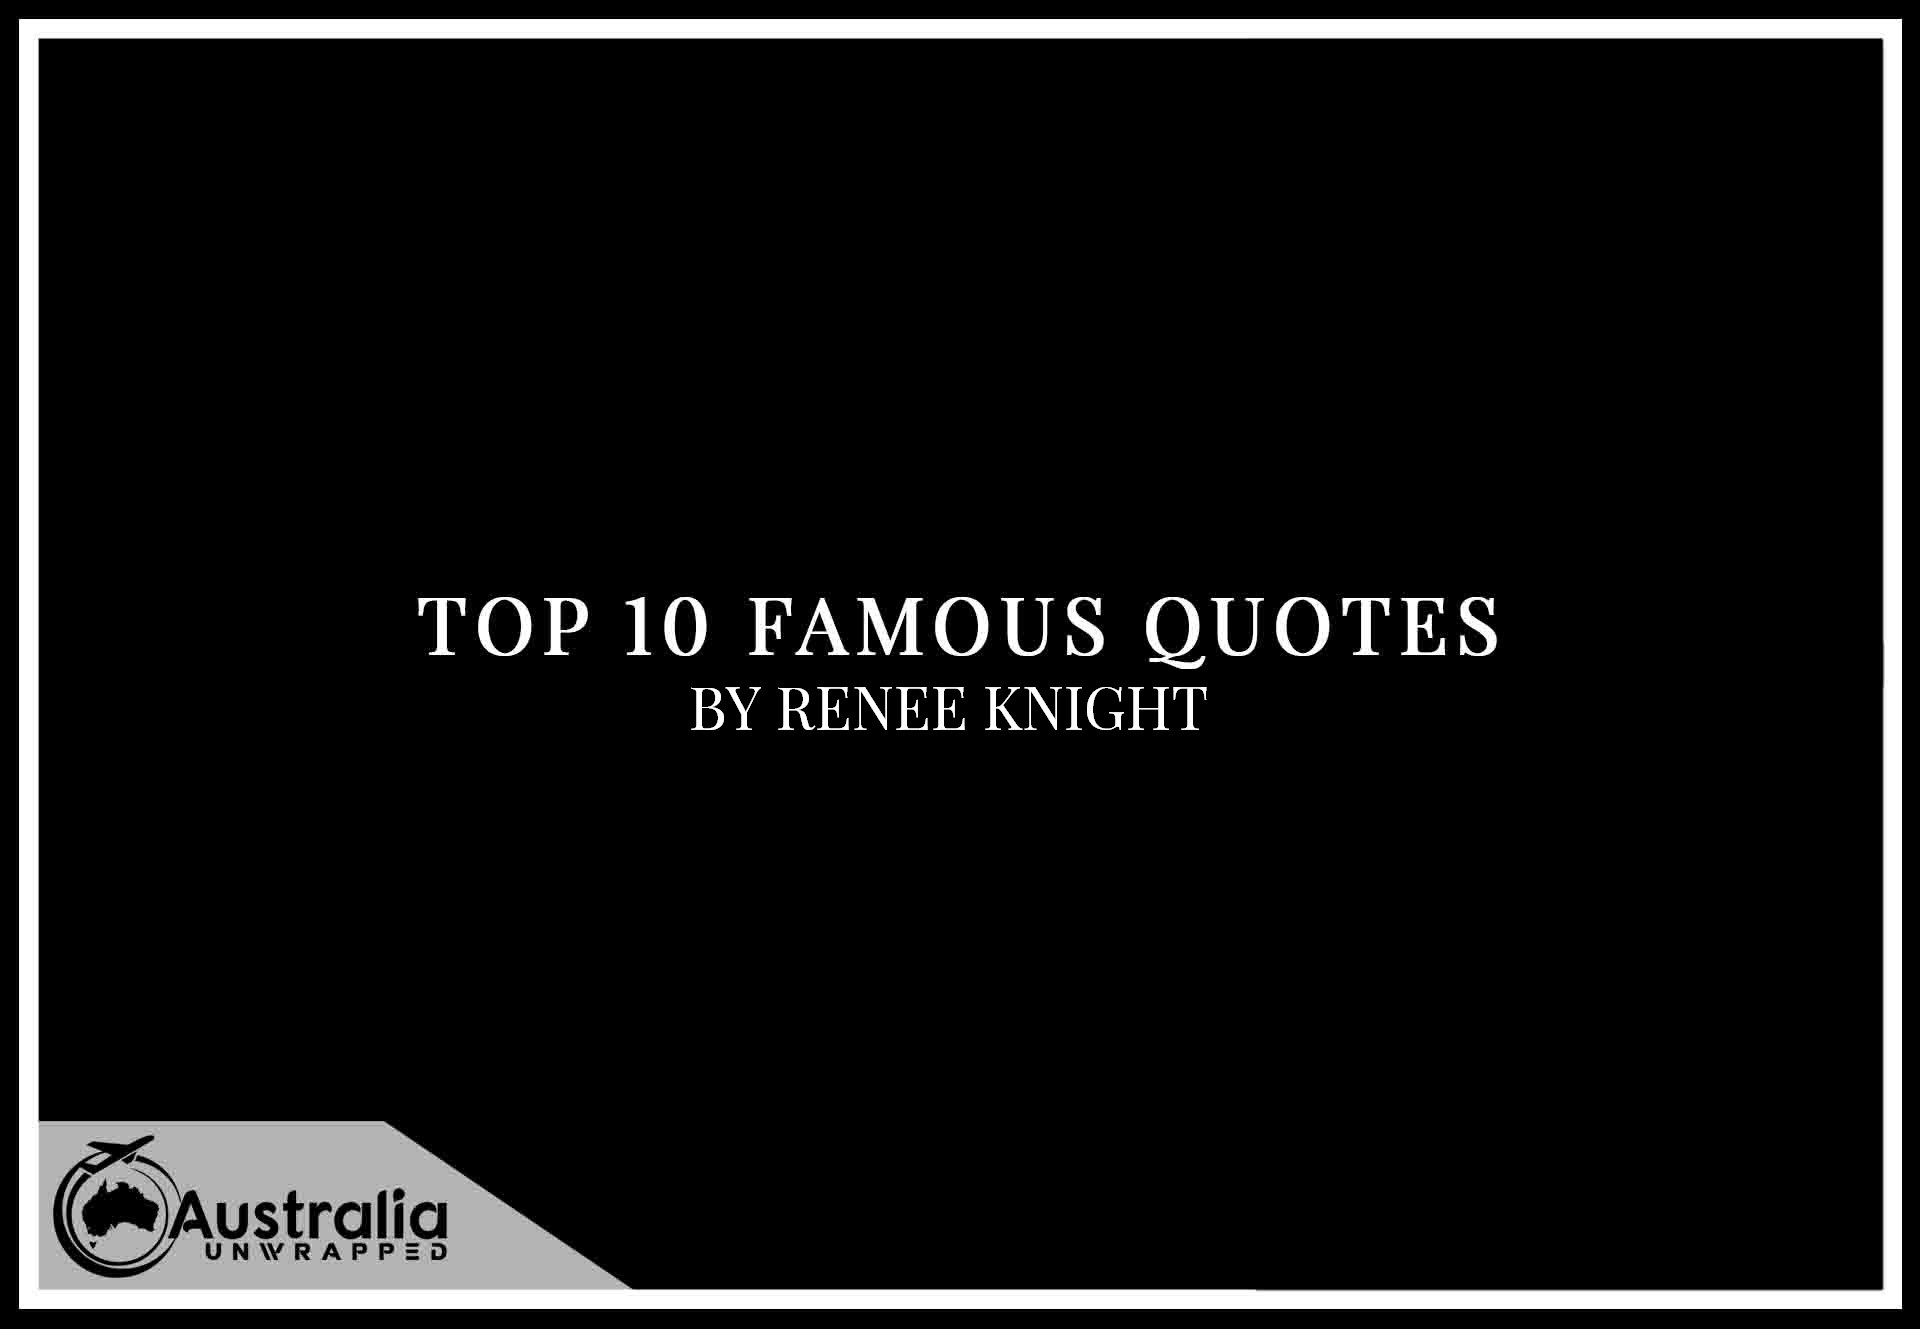 Top 10 Famous Quotes by Author Renée Knight